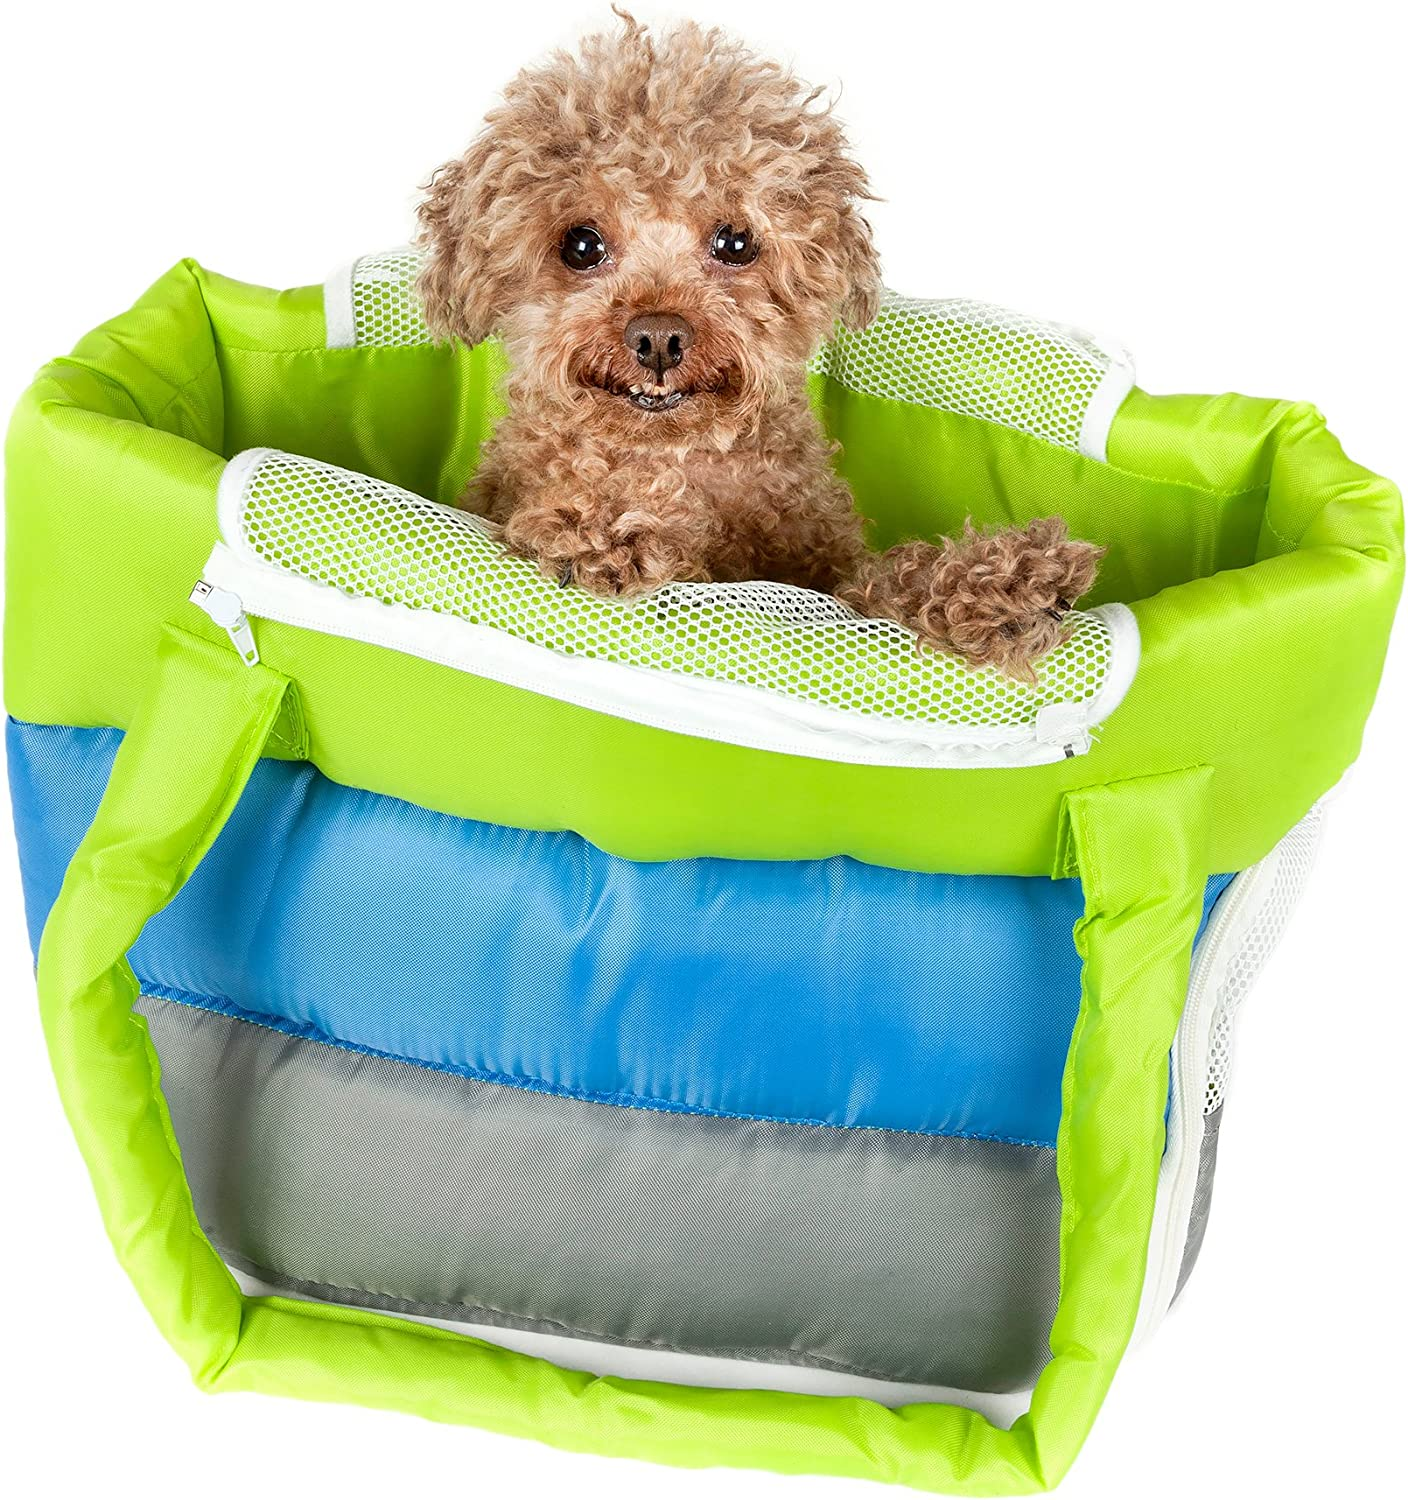 PET LIFE 'BubblePoly' Tricolord Winter Insulated Fashion Designer Pet Dog Carrier, One Size, Green, bluee, Grey